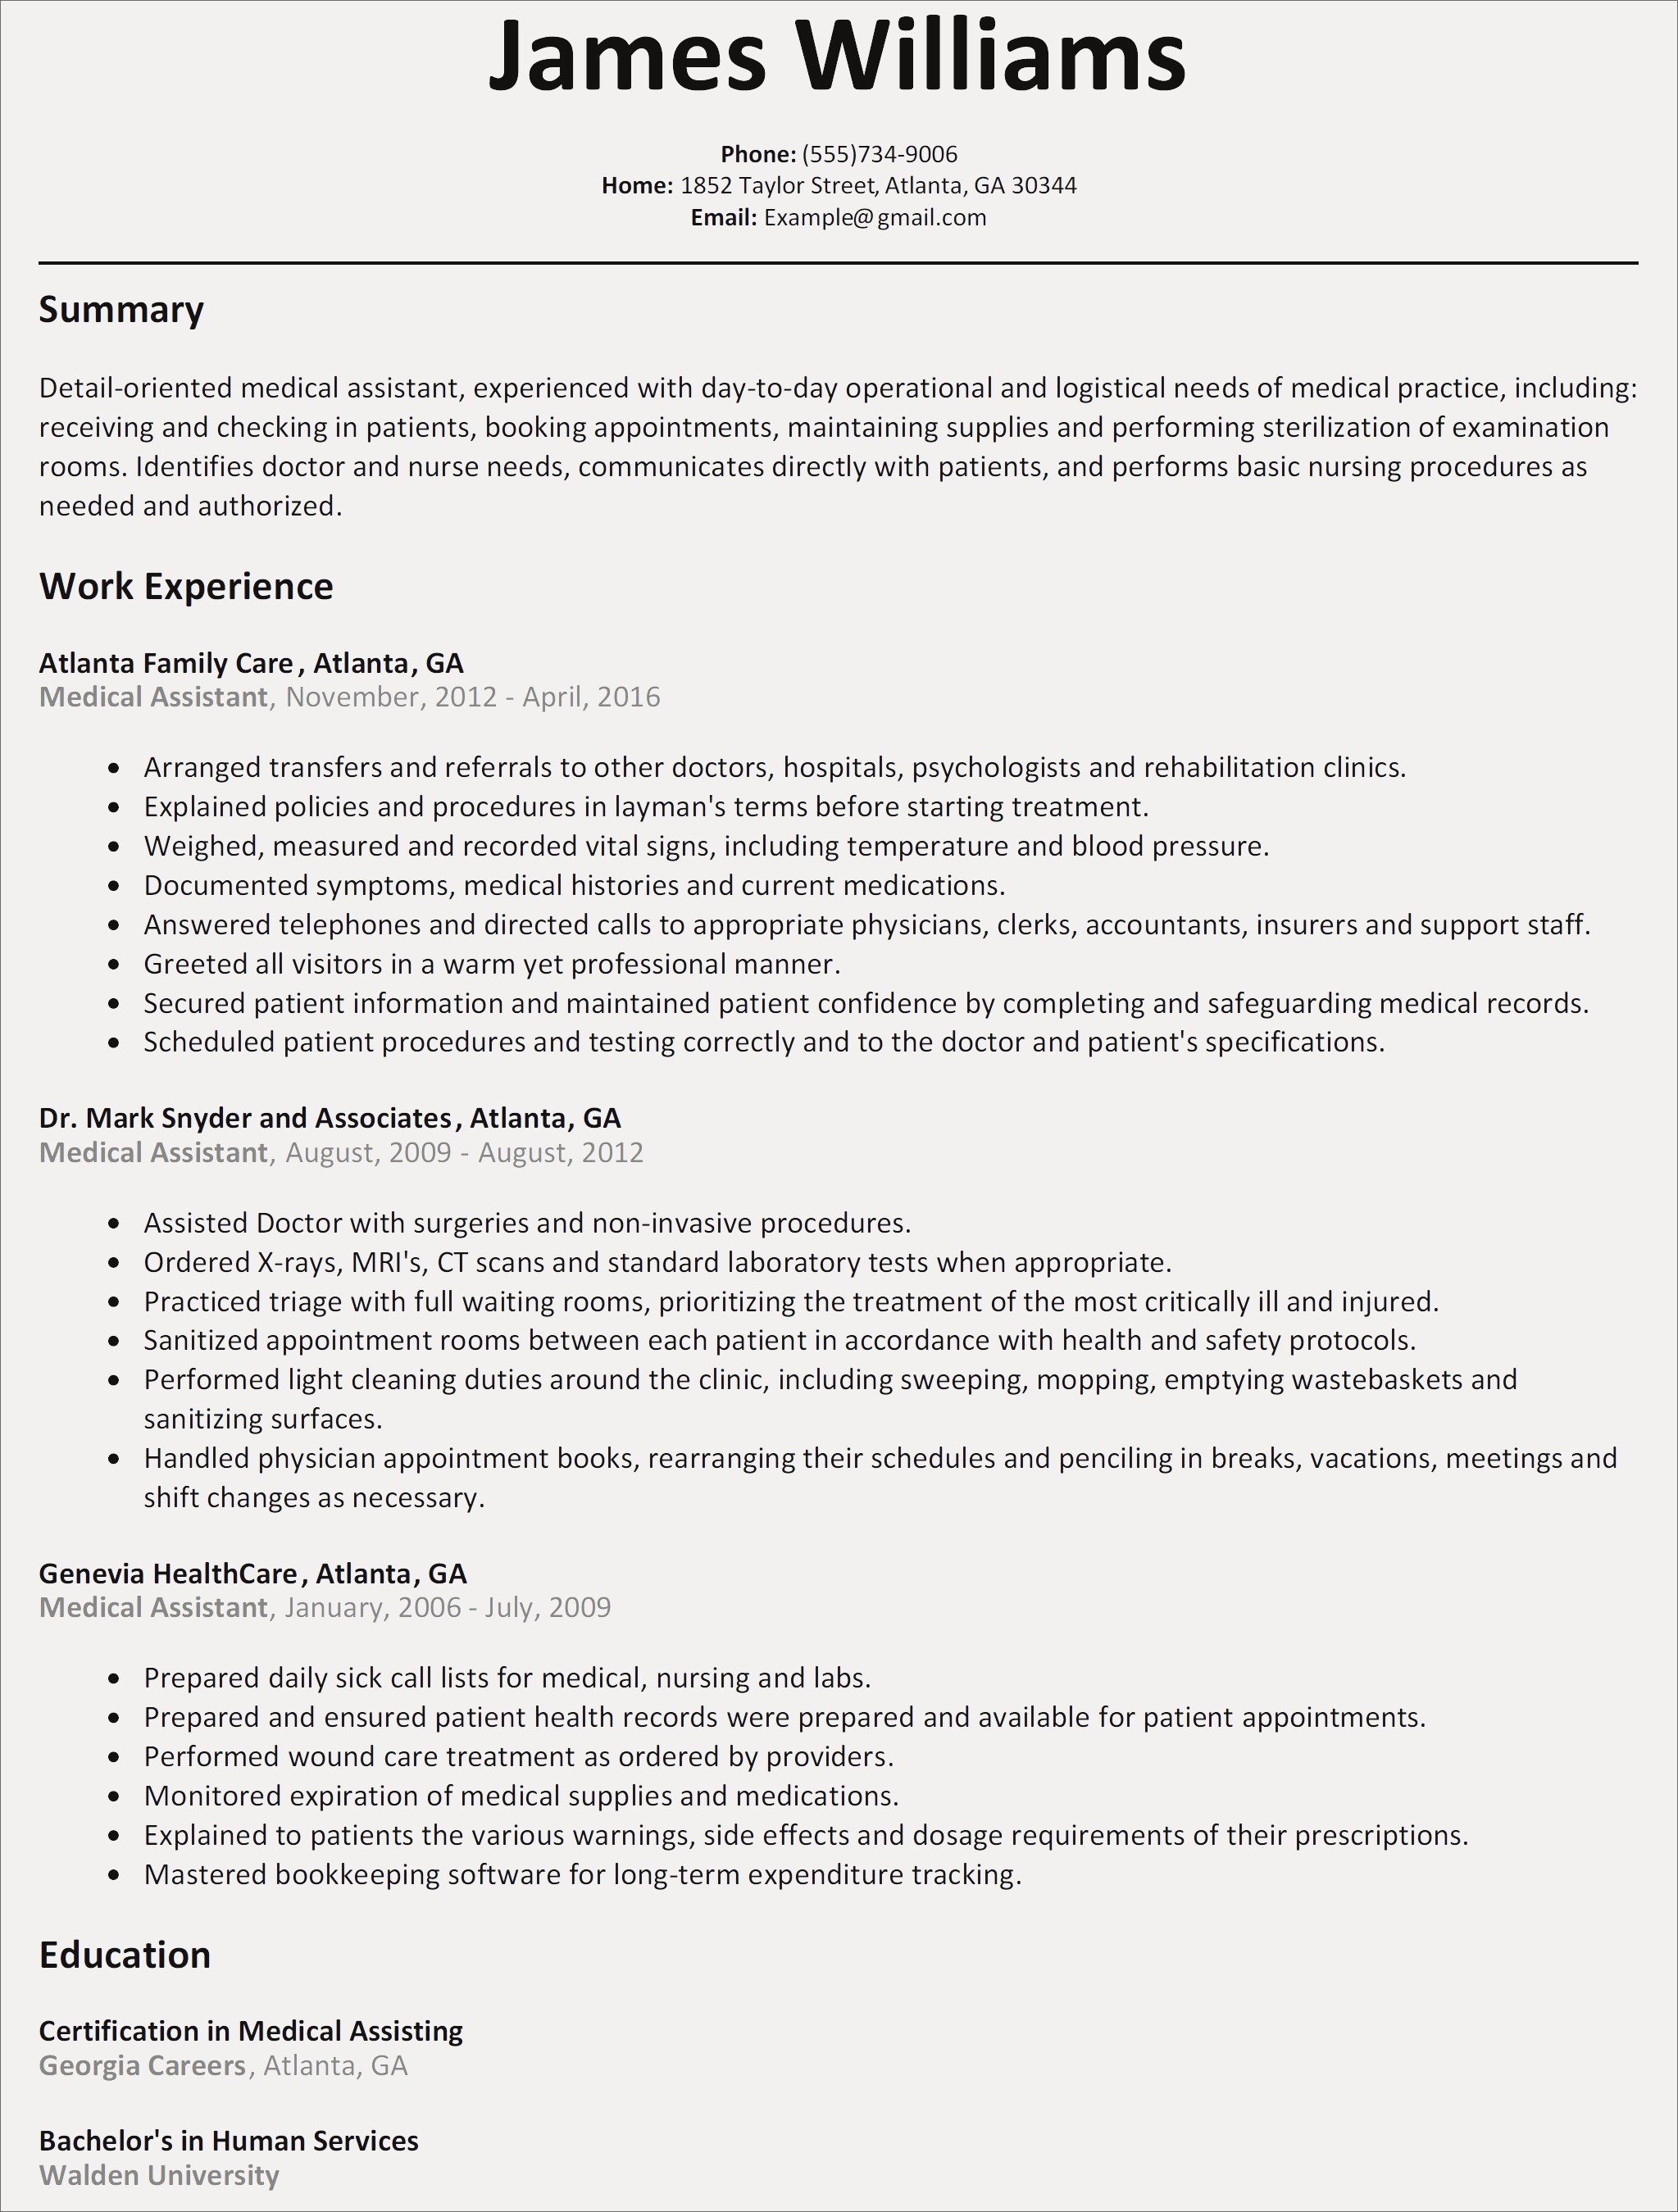 professor resume template Collection-Sample Resume For Adjunct Professor Position Best Academic Resume Examples Awesome Resume Template Free Word New Od 12-a